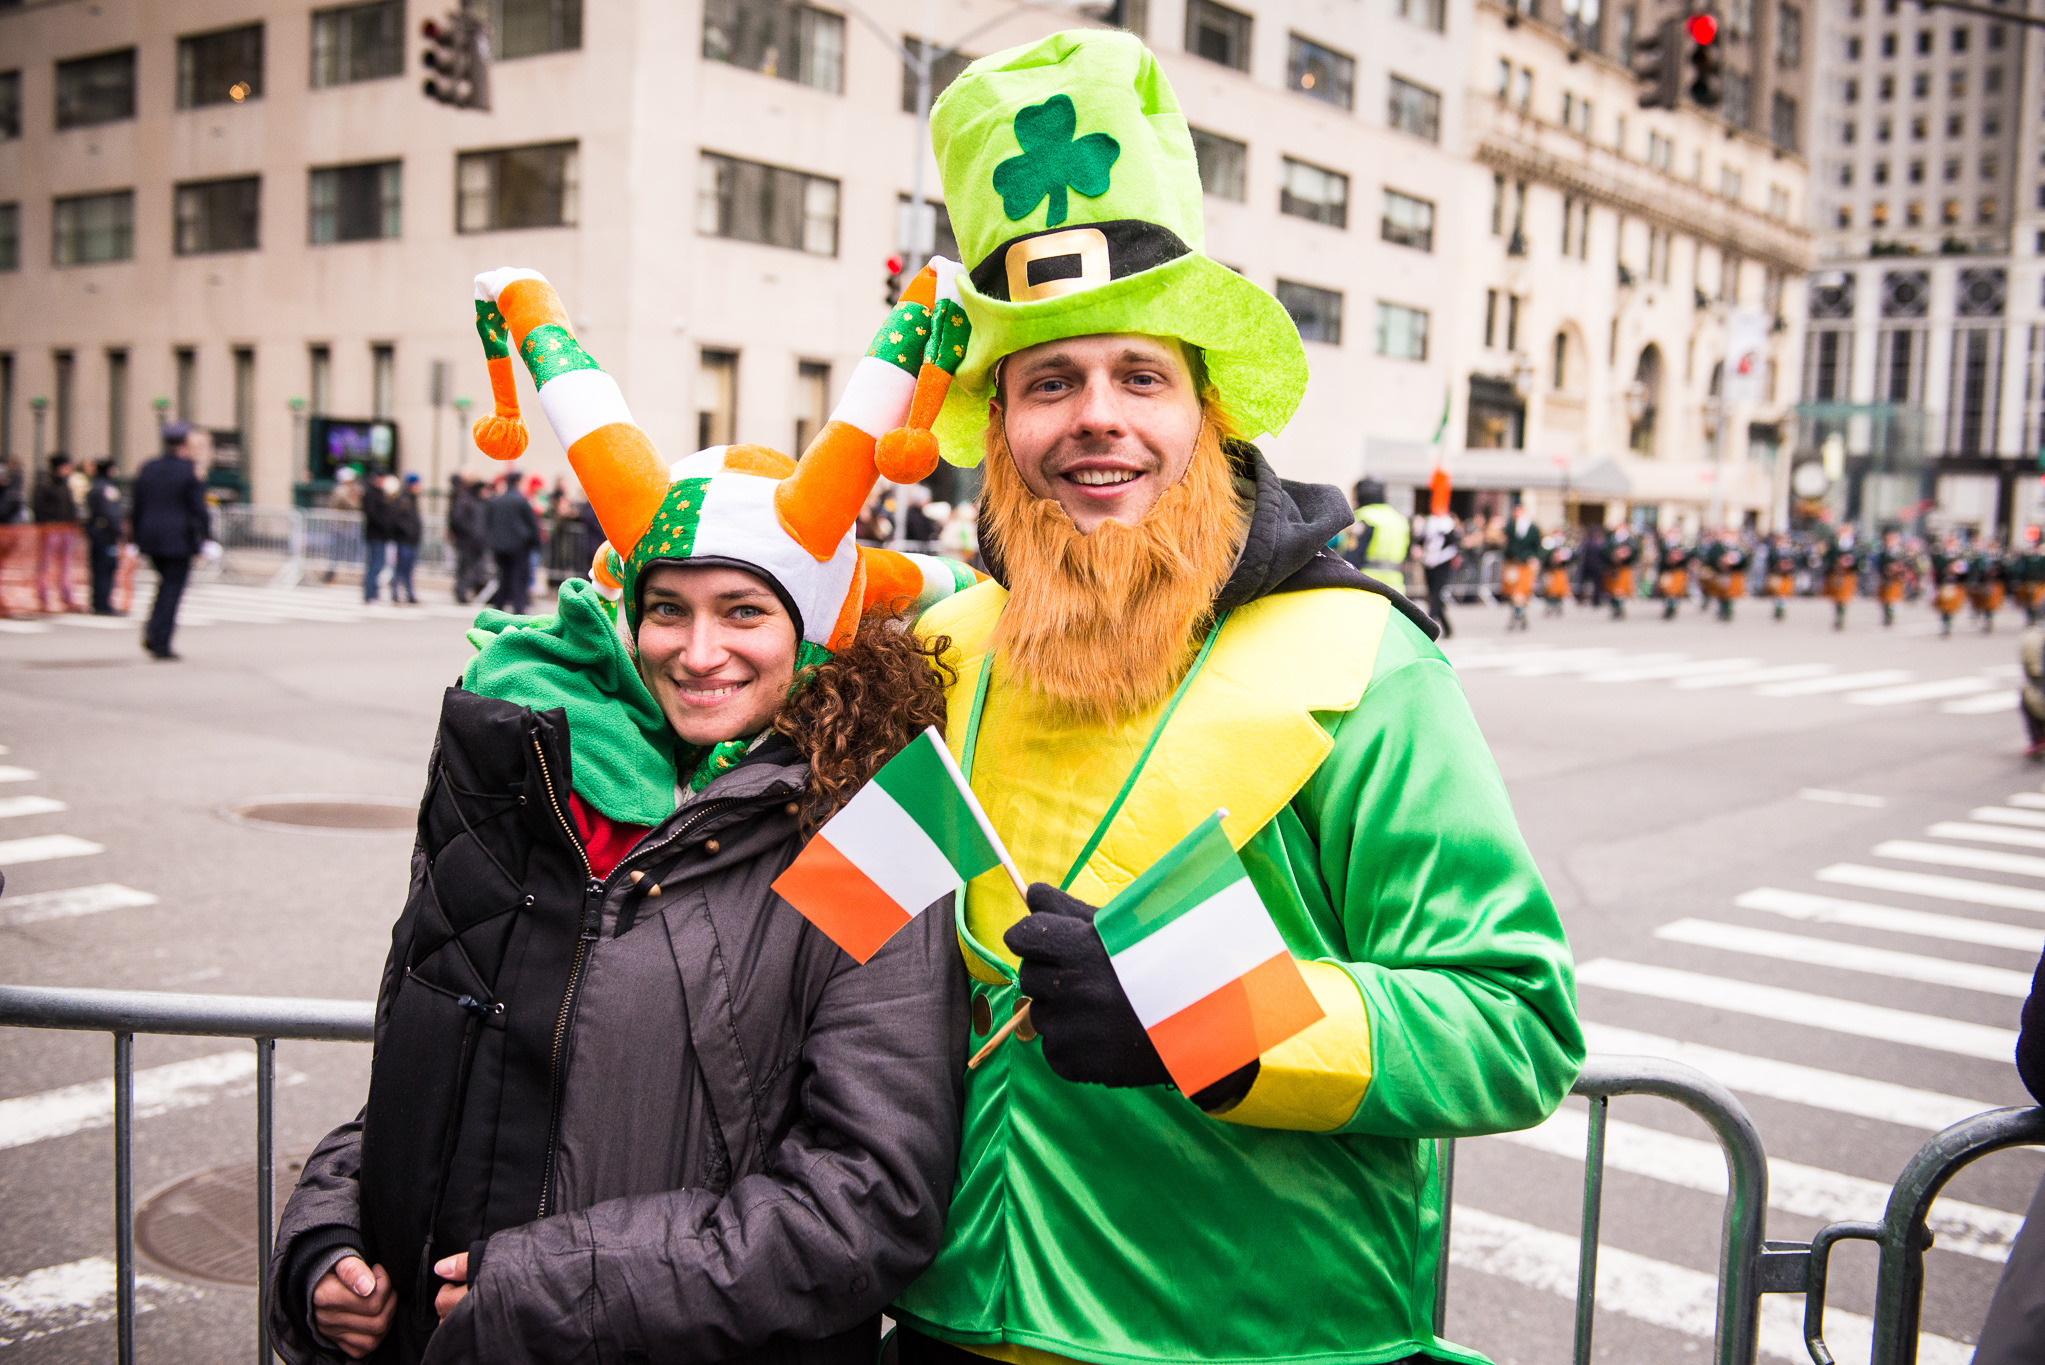 St. Patrick's Day Parade and events in NYC